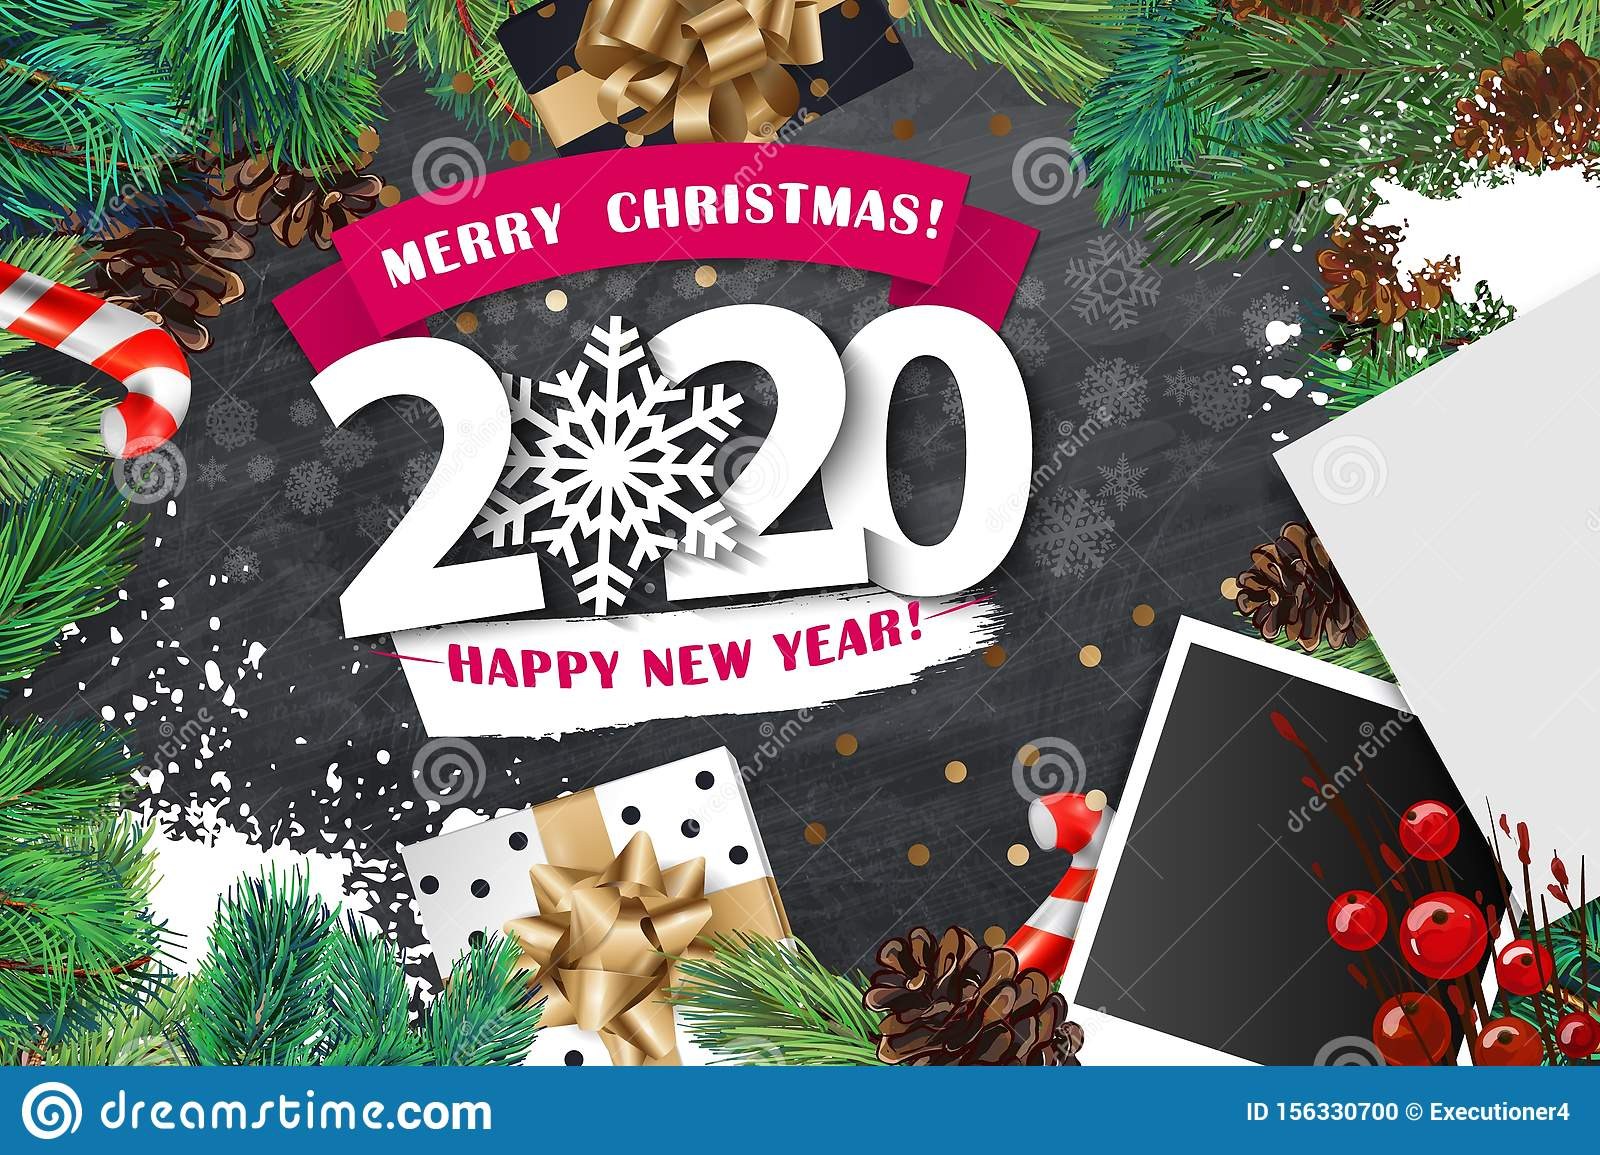 2020 Merry Christmas And Happy New Year Banner With White